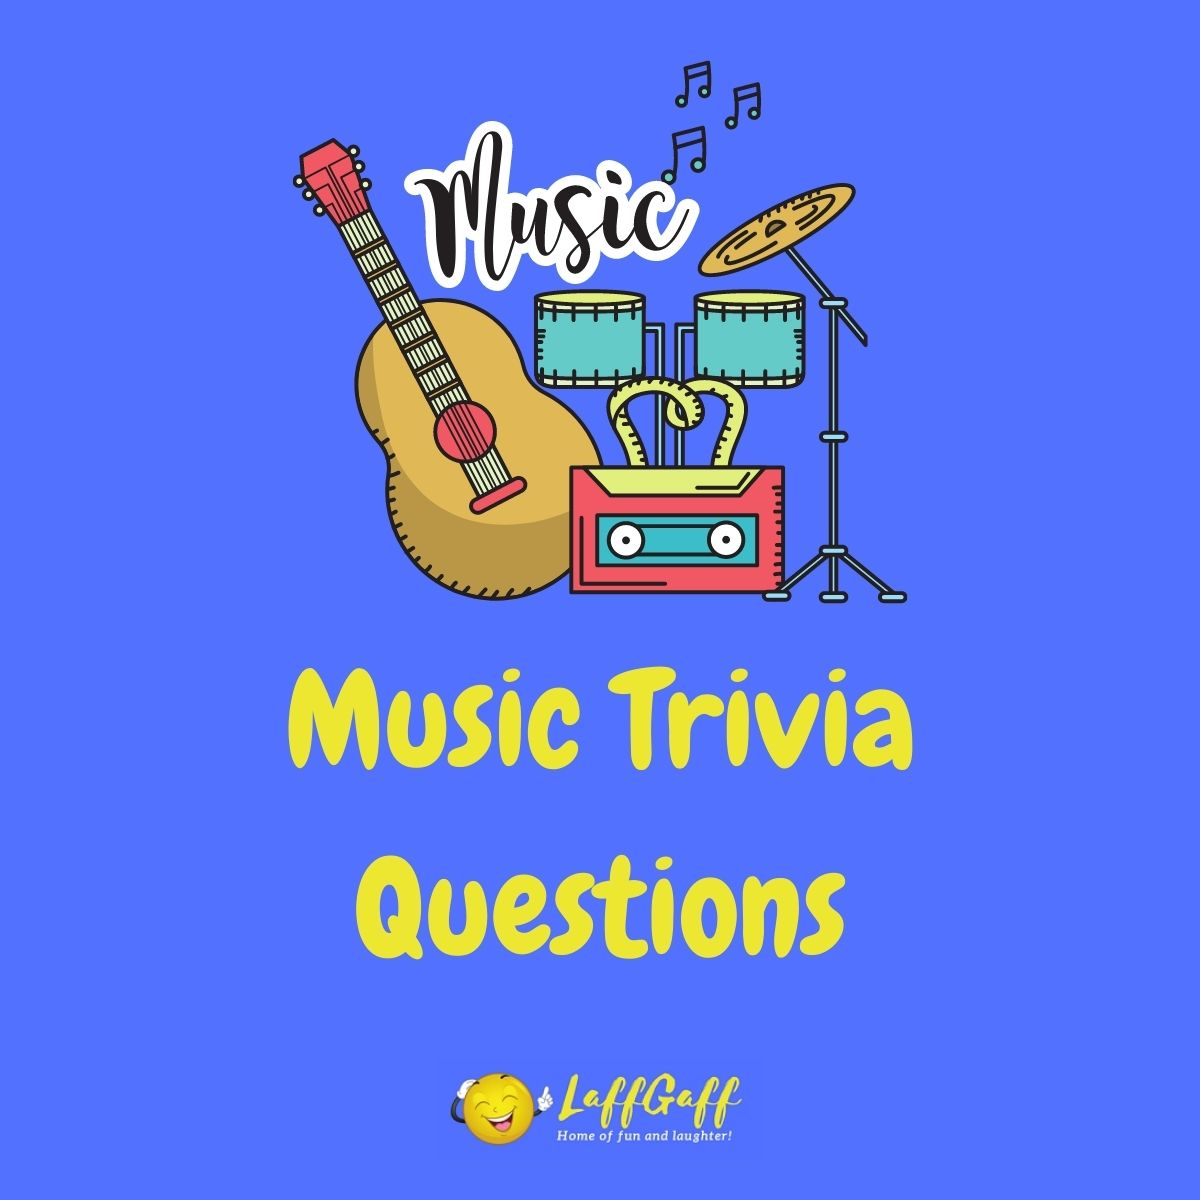 Featured image for a page of music trivia questions.